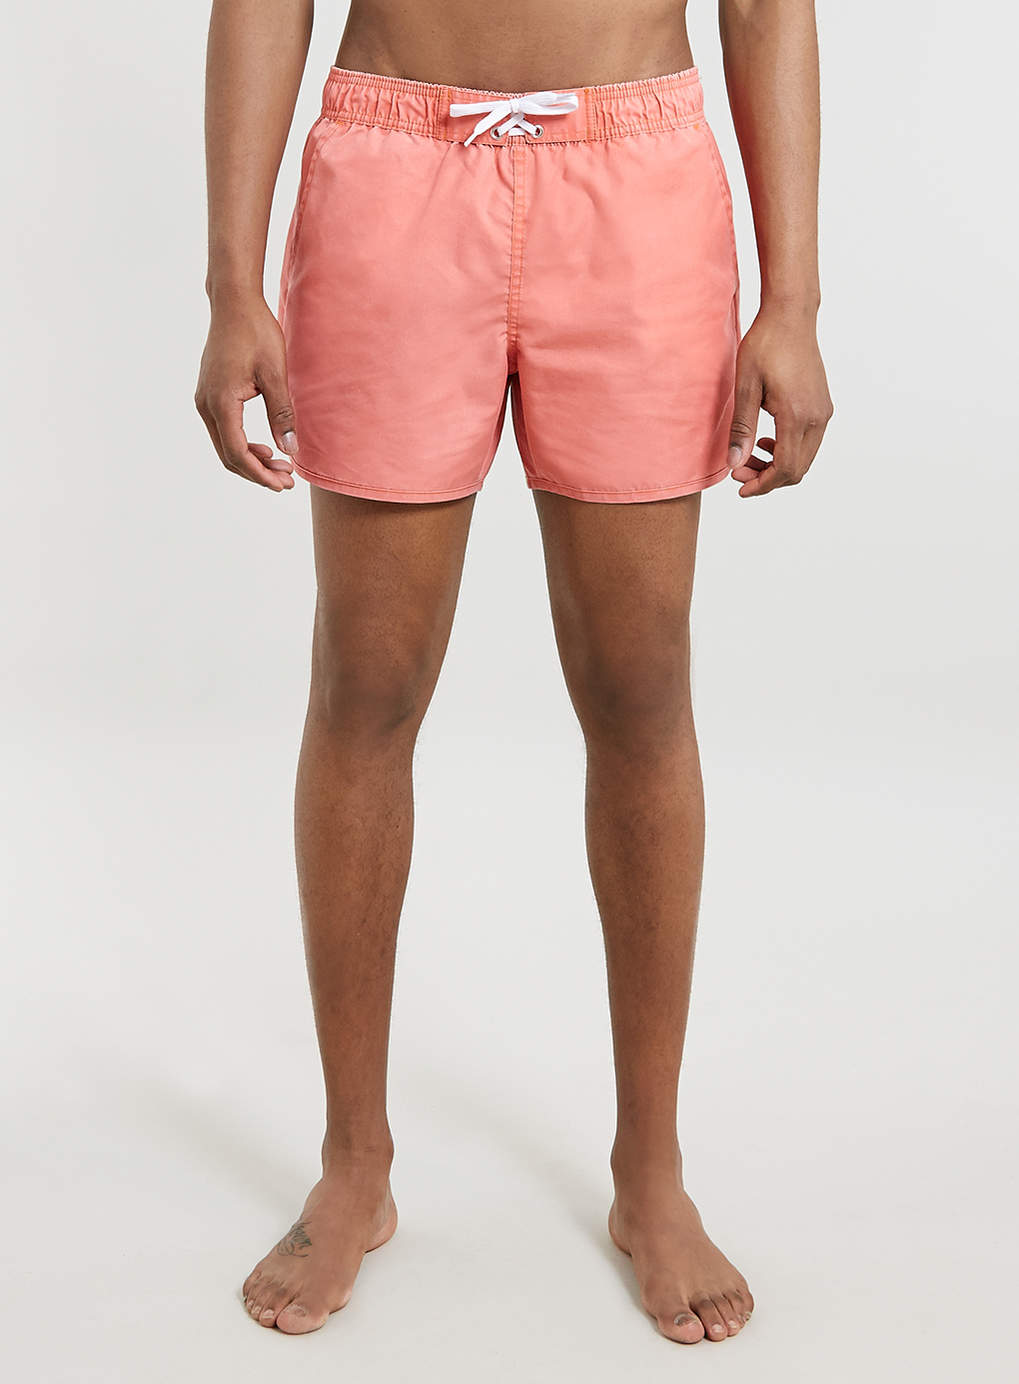 Shop for Pink Flamingo Men's Clothing, shirts, hoodies, and pajamas with thousands of designs.